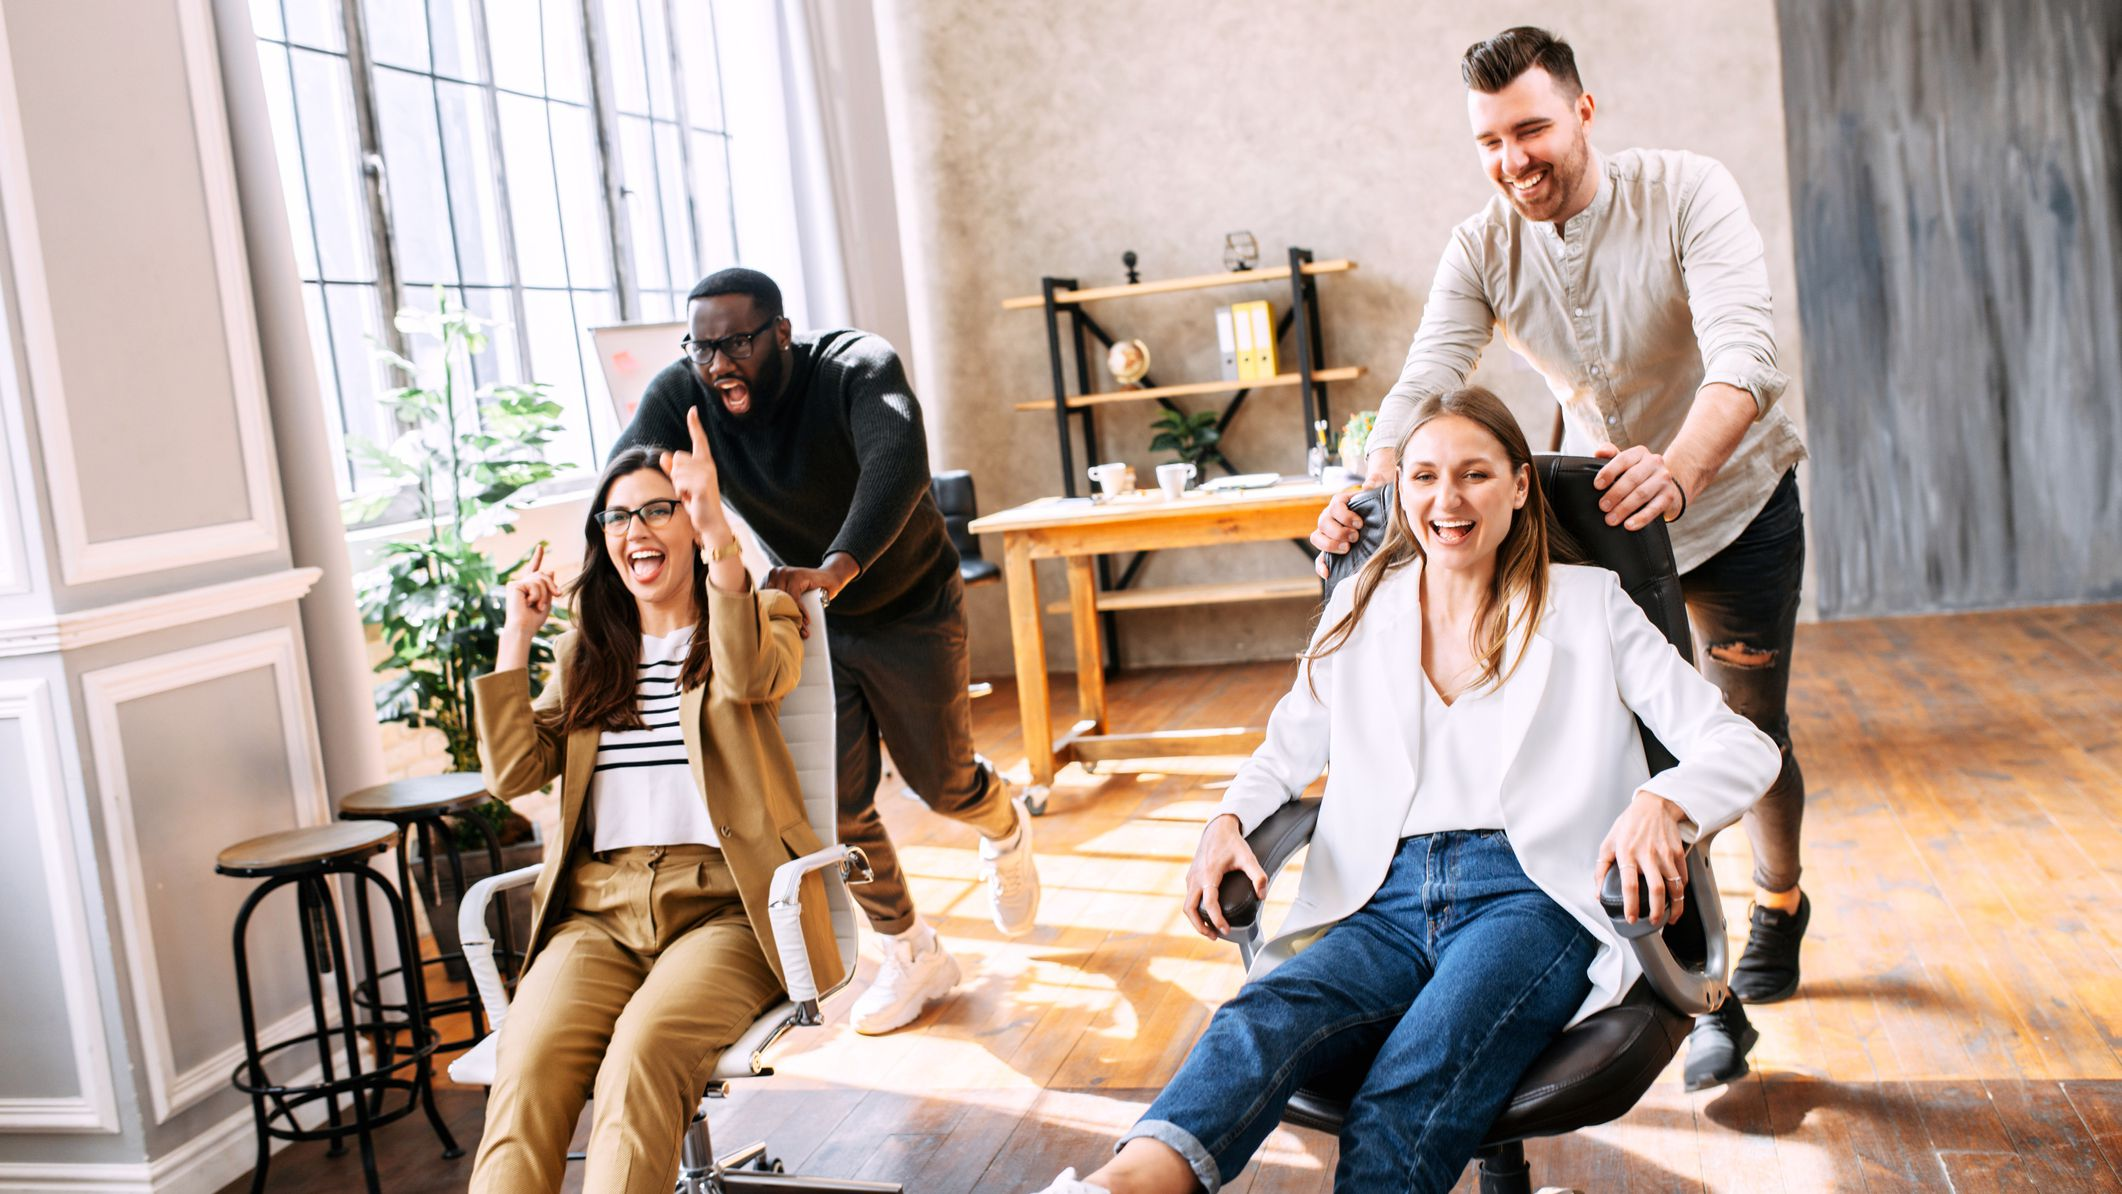 6 TOP SPOTS TO CONSIDER FOR A WORK OUTING AND TEAM BUILDING EXERCISES